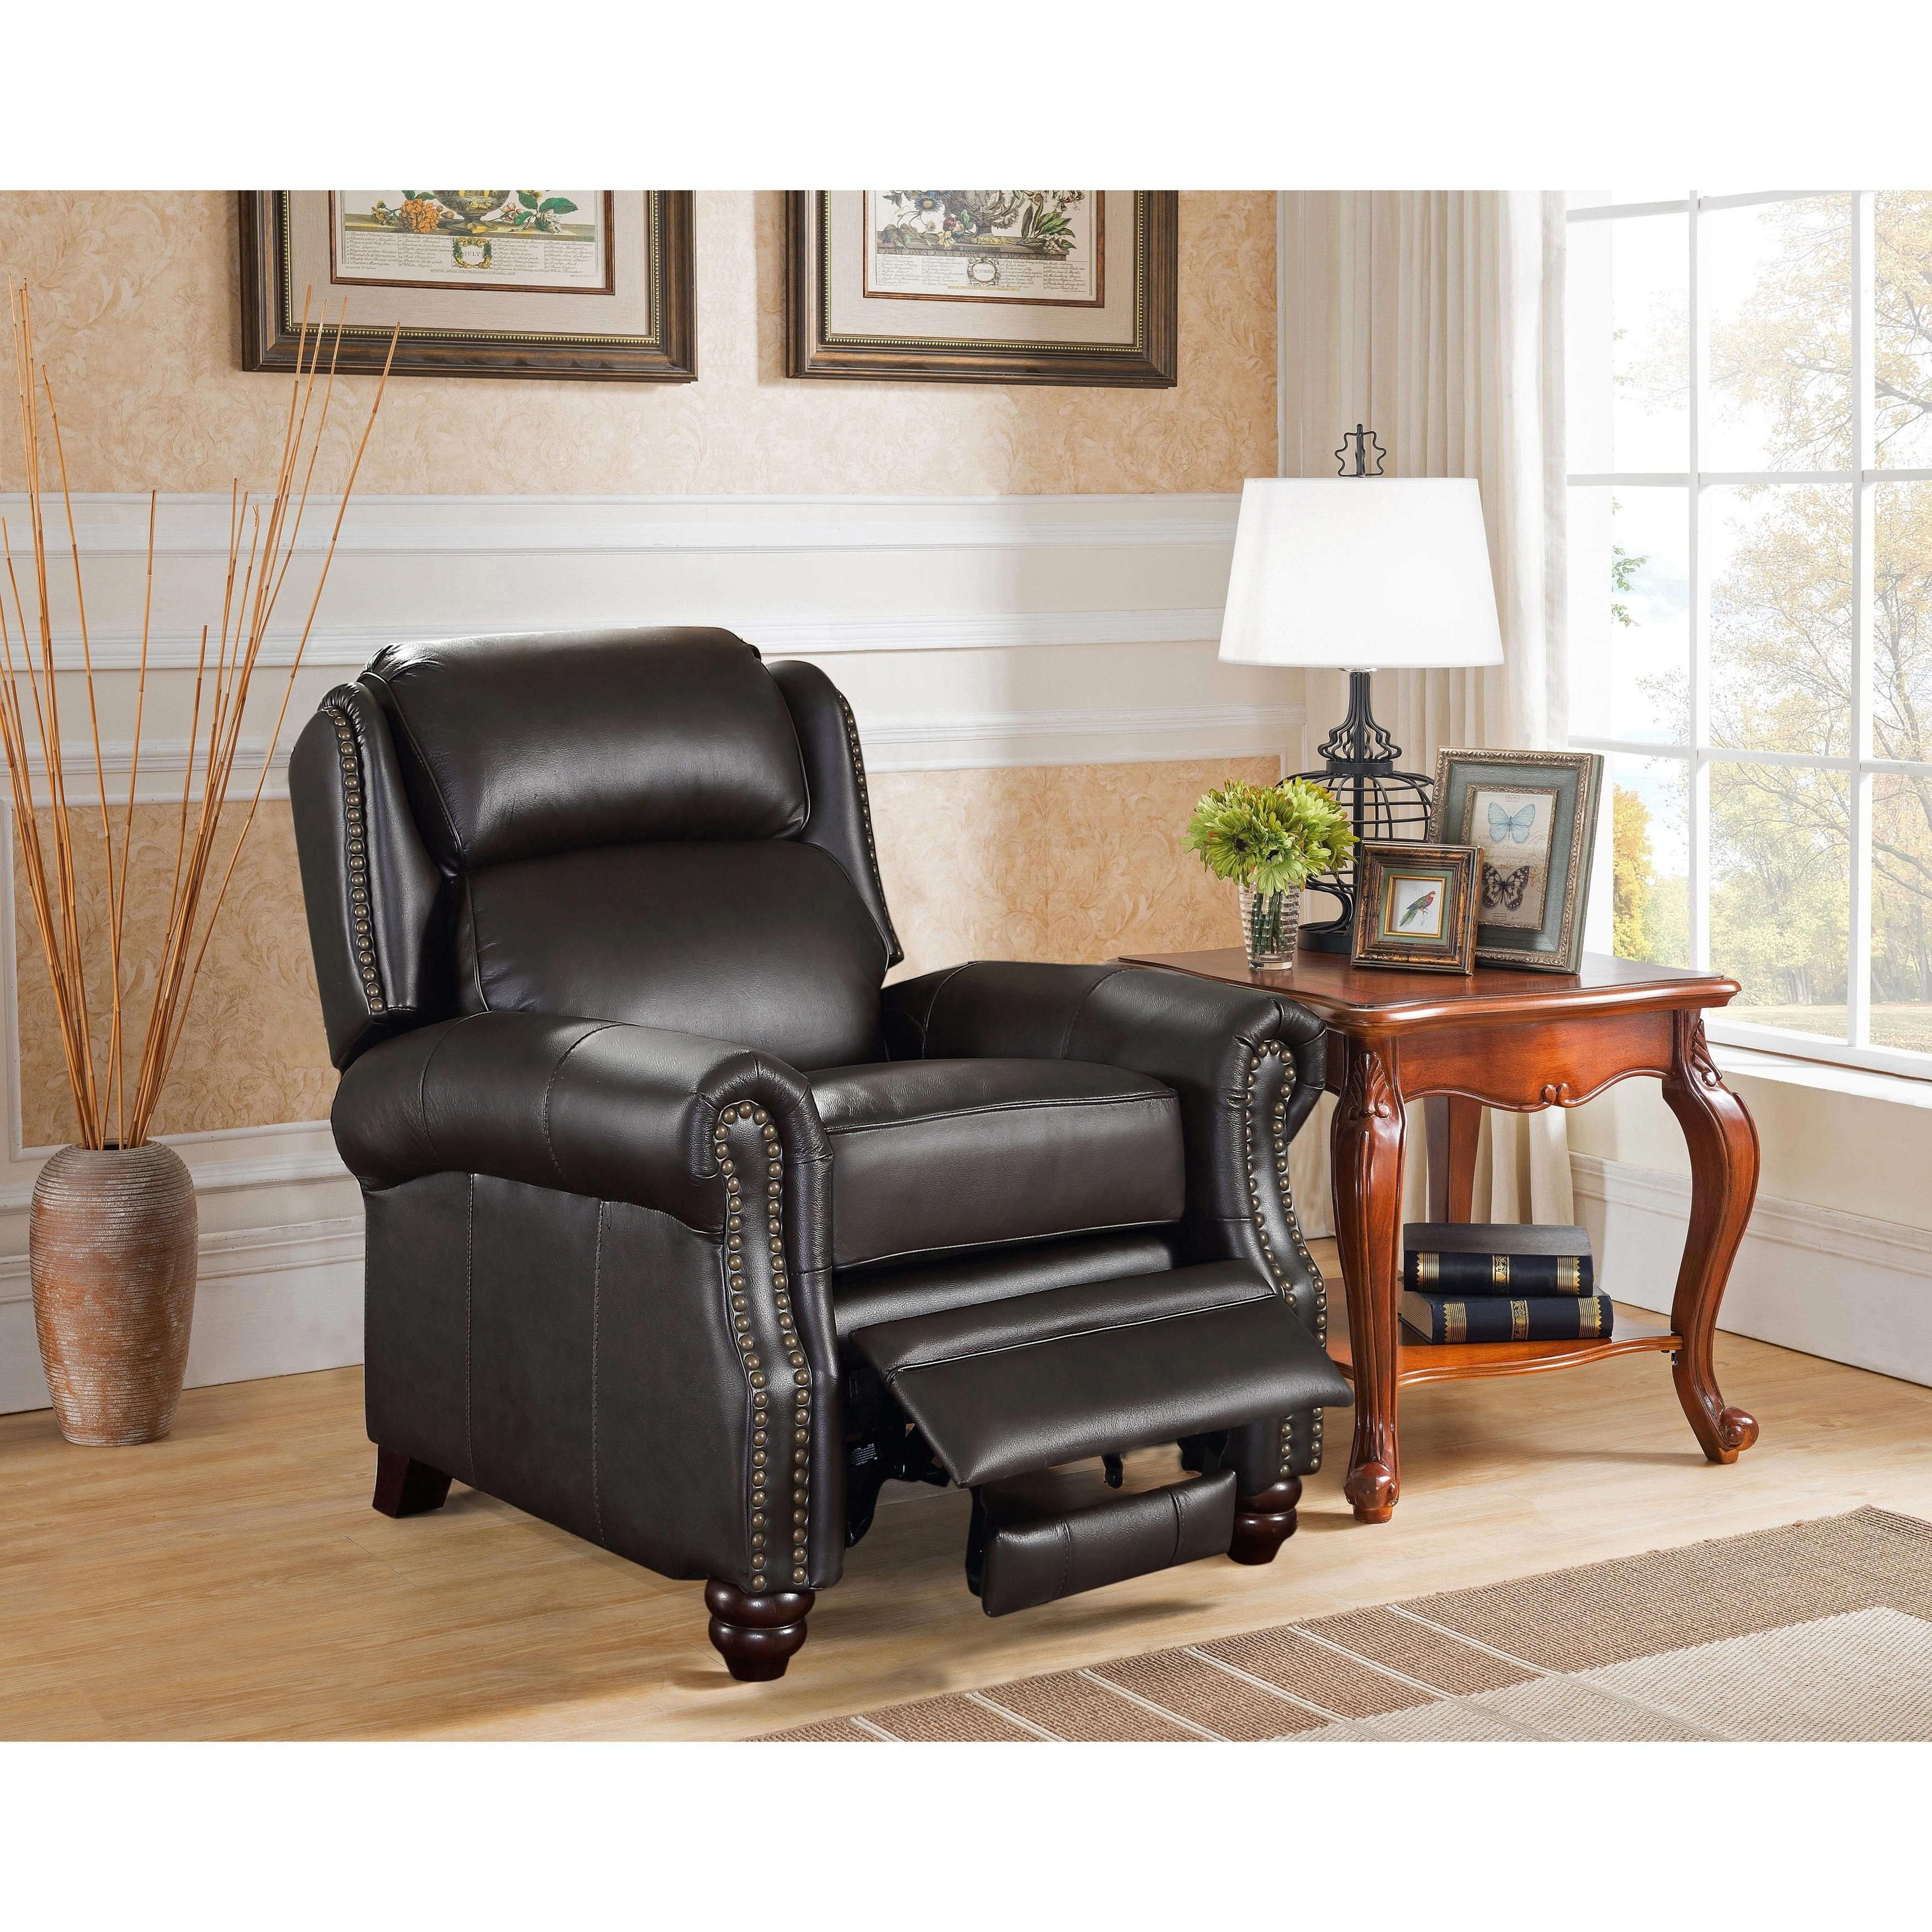 17 exceptional recliner chair head covers for leather